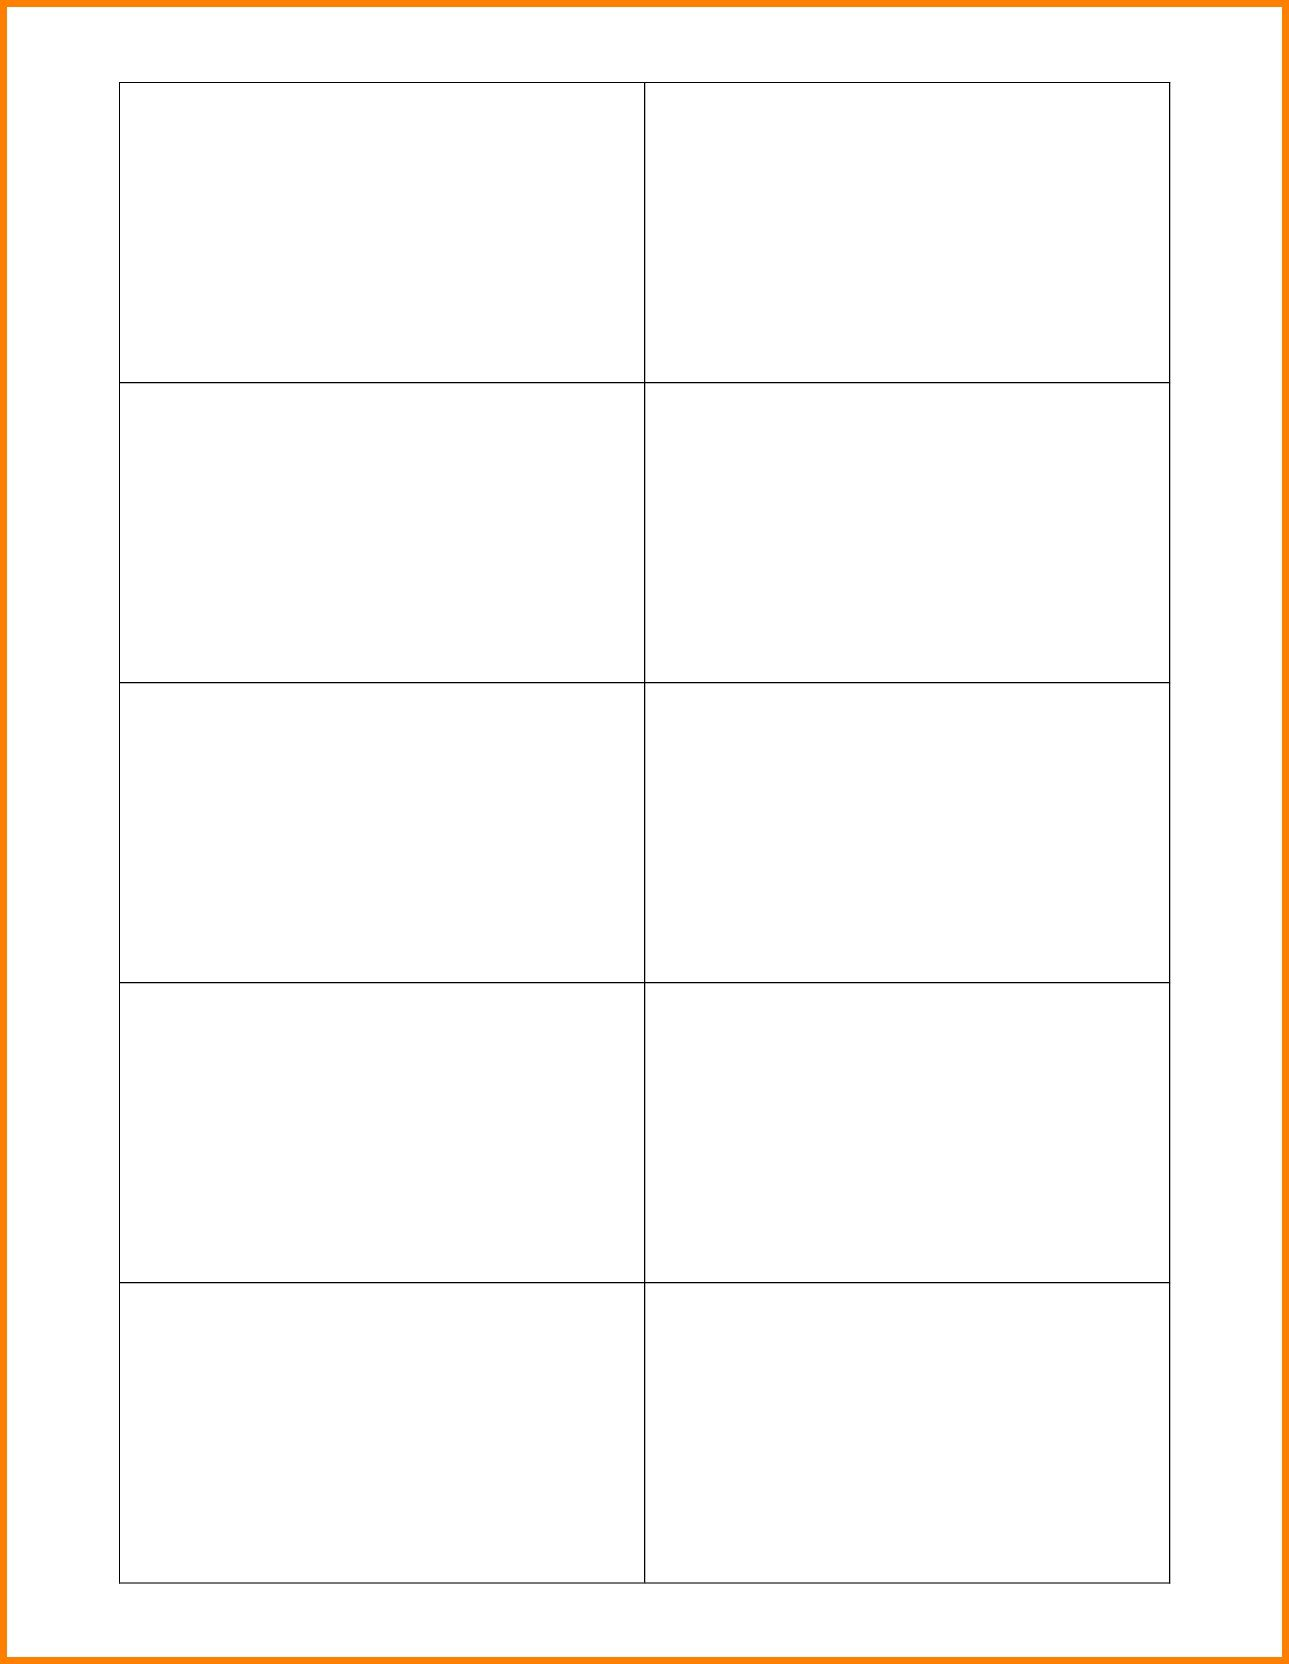 000 Awesome Blank Busines Card Template Word Highest Quality  Vertical Microsoft 2013 AveryFull